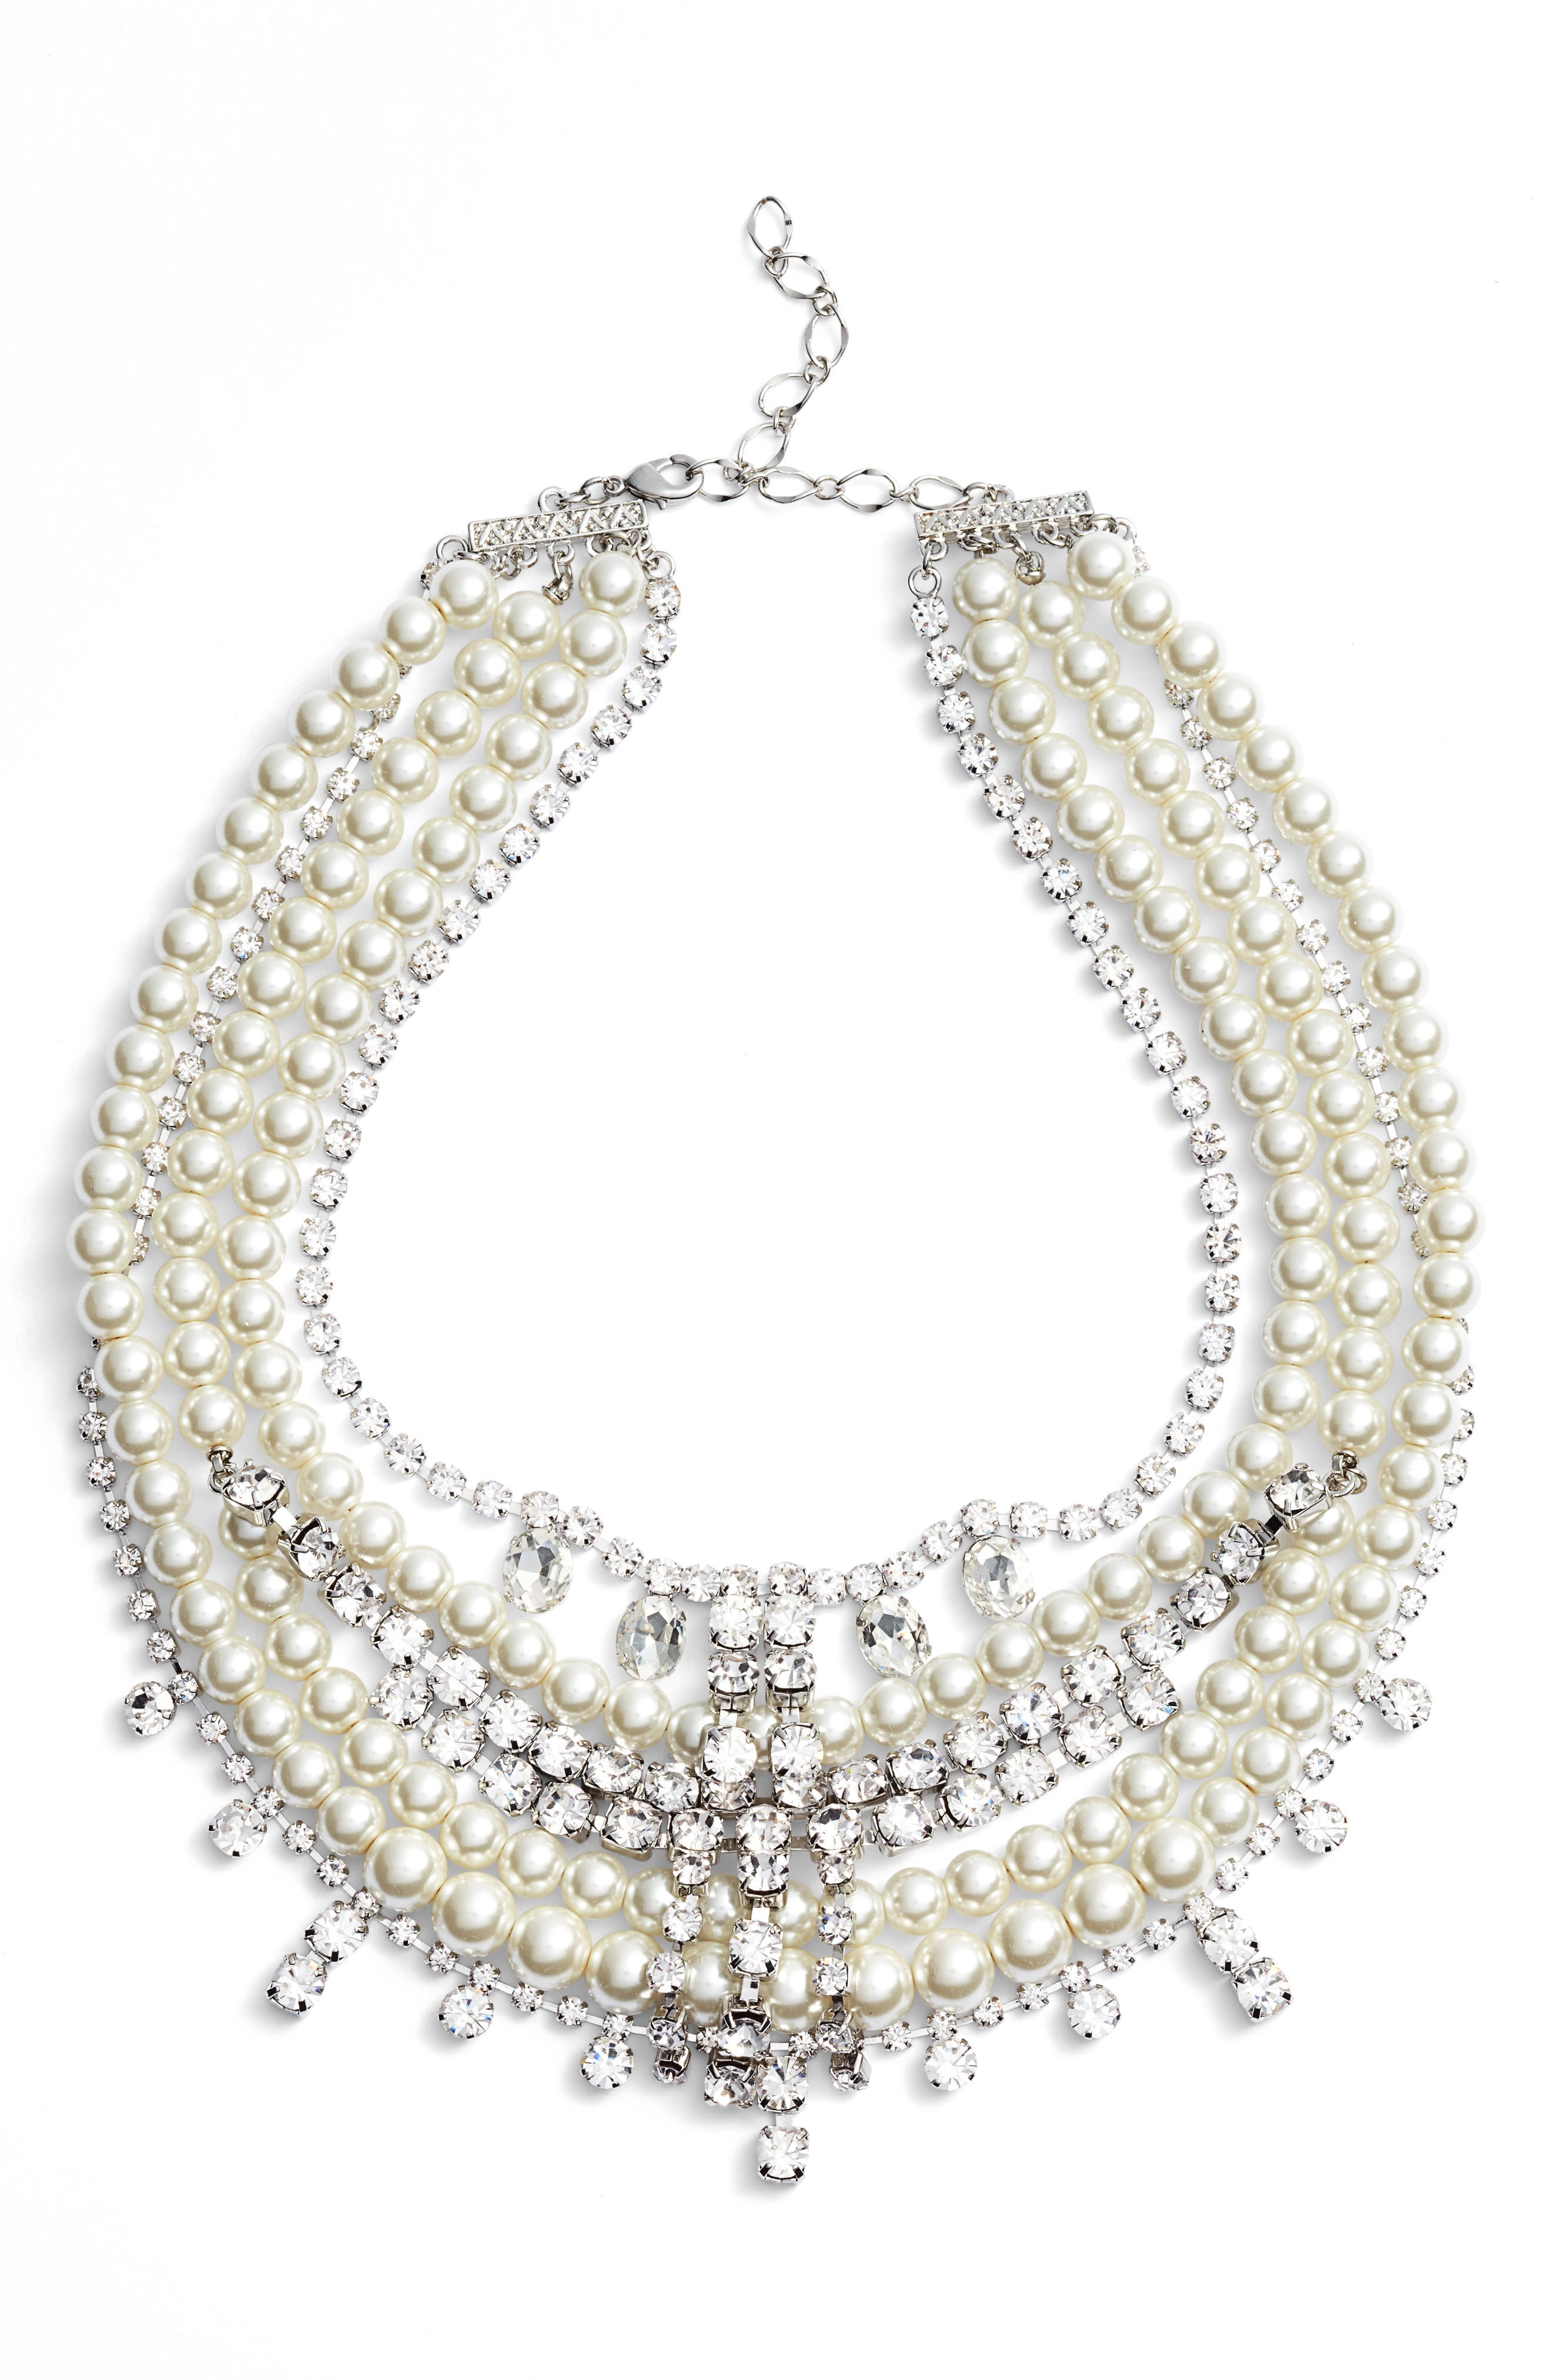 CRISTABELLE Crystal & Imitation Pearl Multistrand Necklace